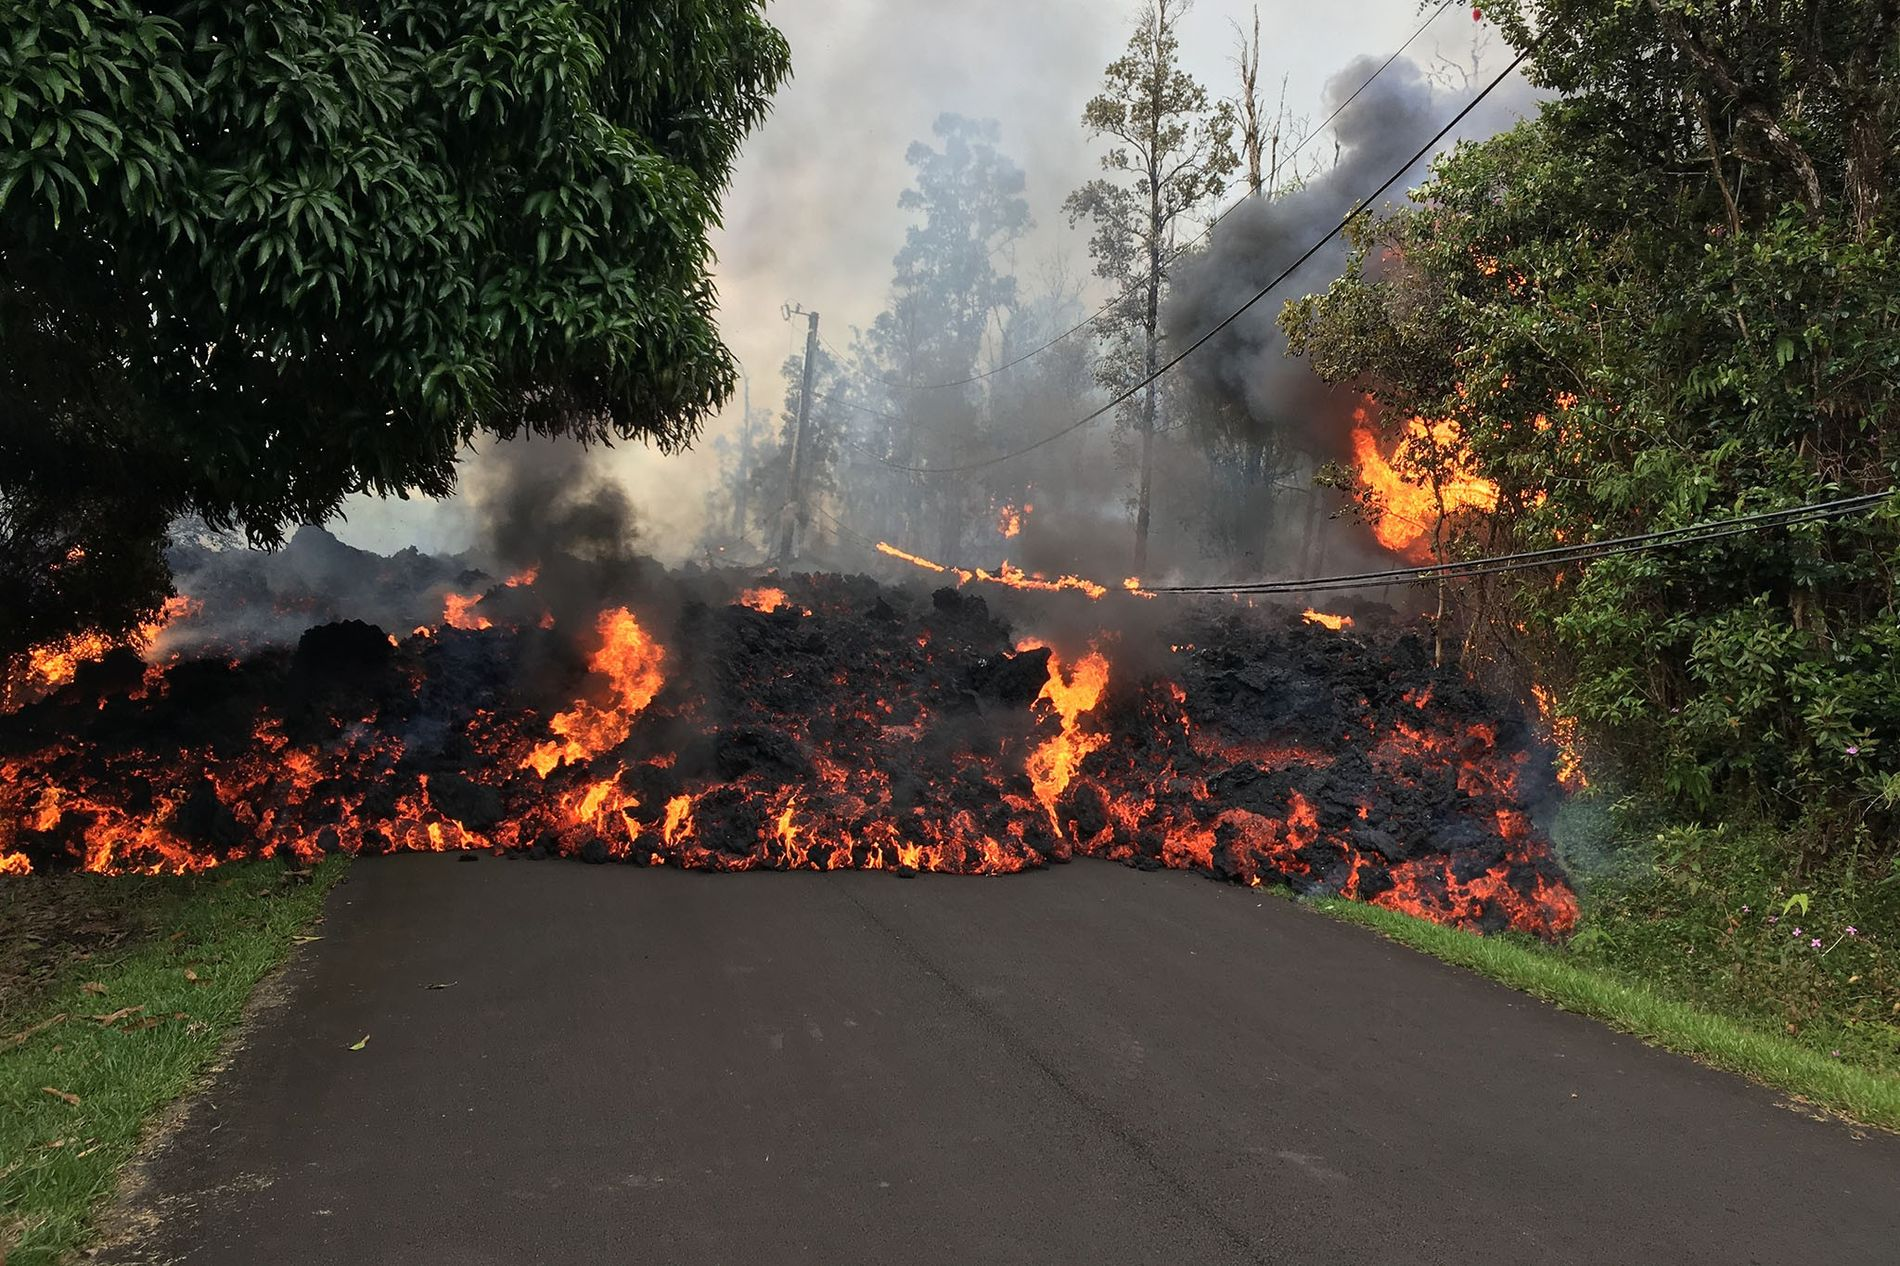 Lava from Hawaii's volcanoes tends to be comparatively runny due to its lower silica content.